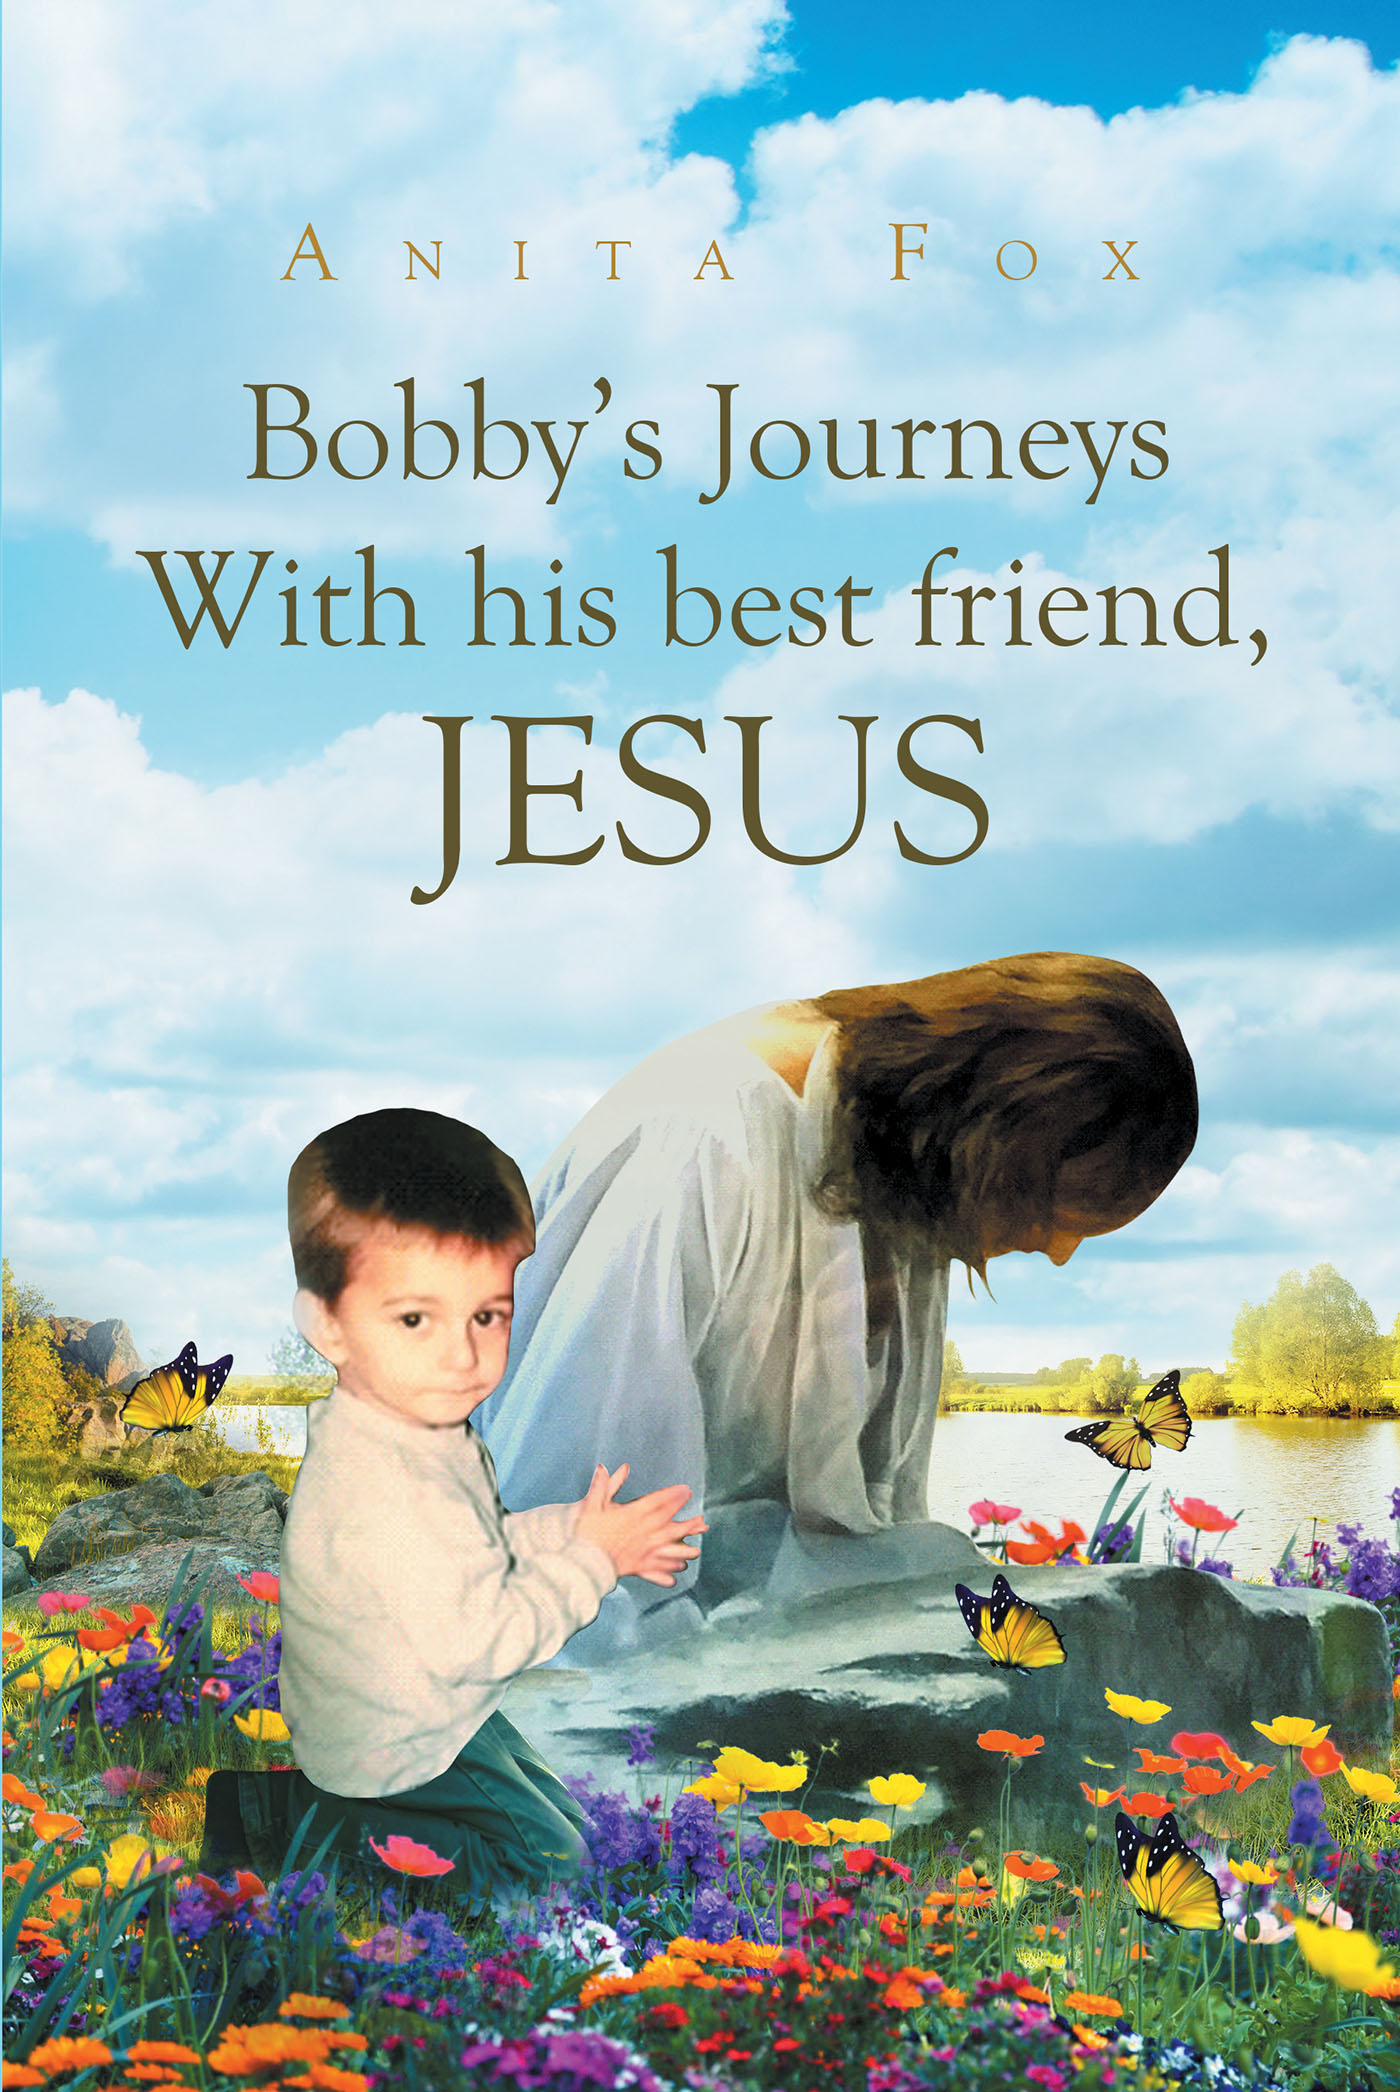 """Author Anita Fox's newly released """"Bobby's Journeys With His"""